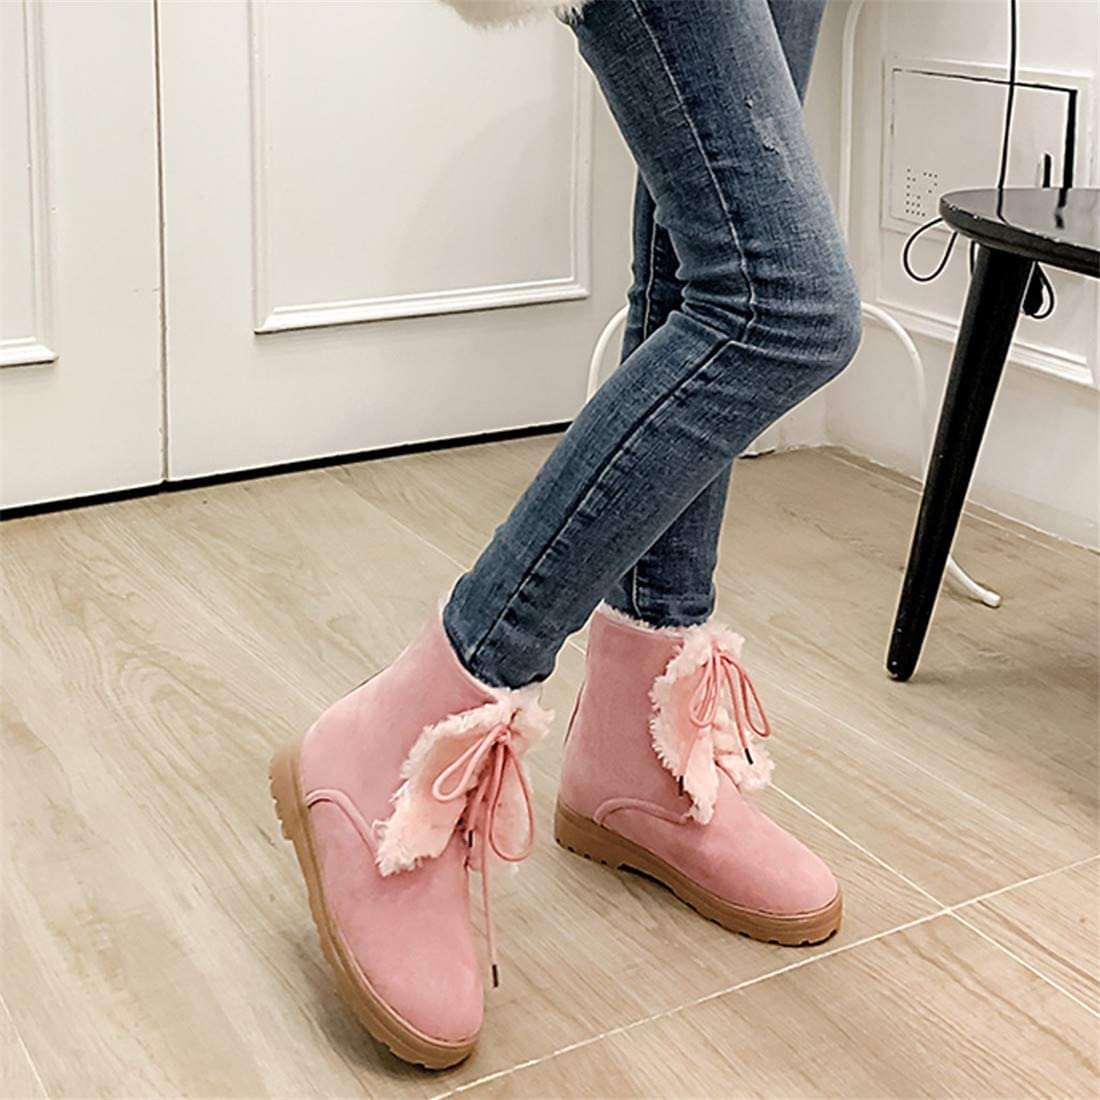 DaoAg Womens Wool Boots Sweet Round Toe Lace Up Platform-Bottom Ankle Snow Boots